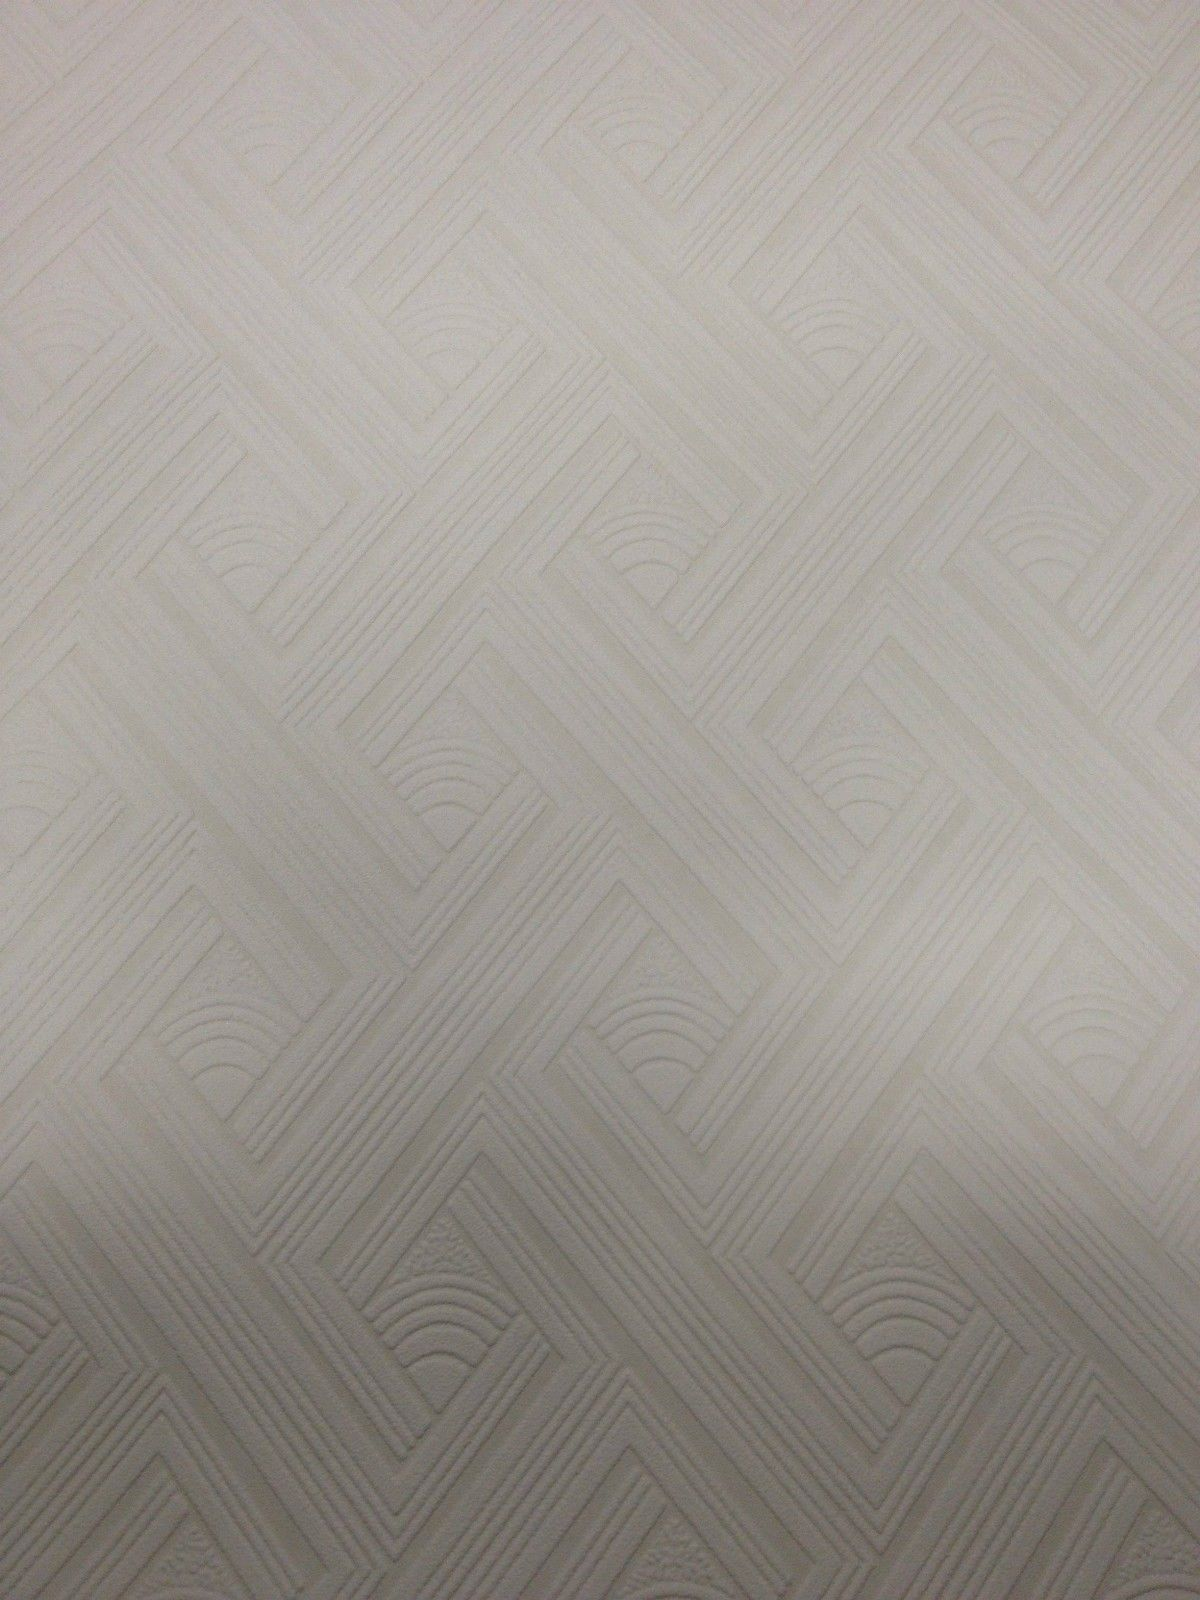 Thick White Blown Wallpaper Superfresco 68 £8.99